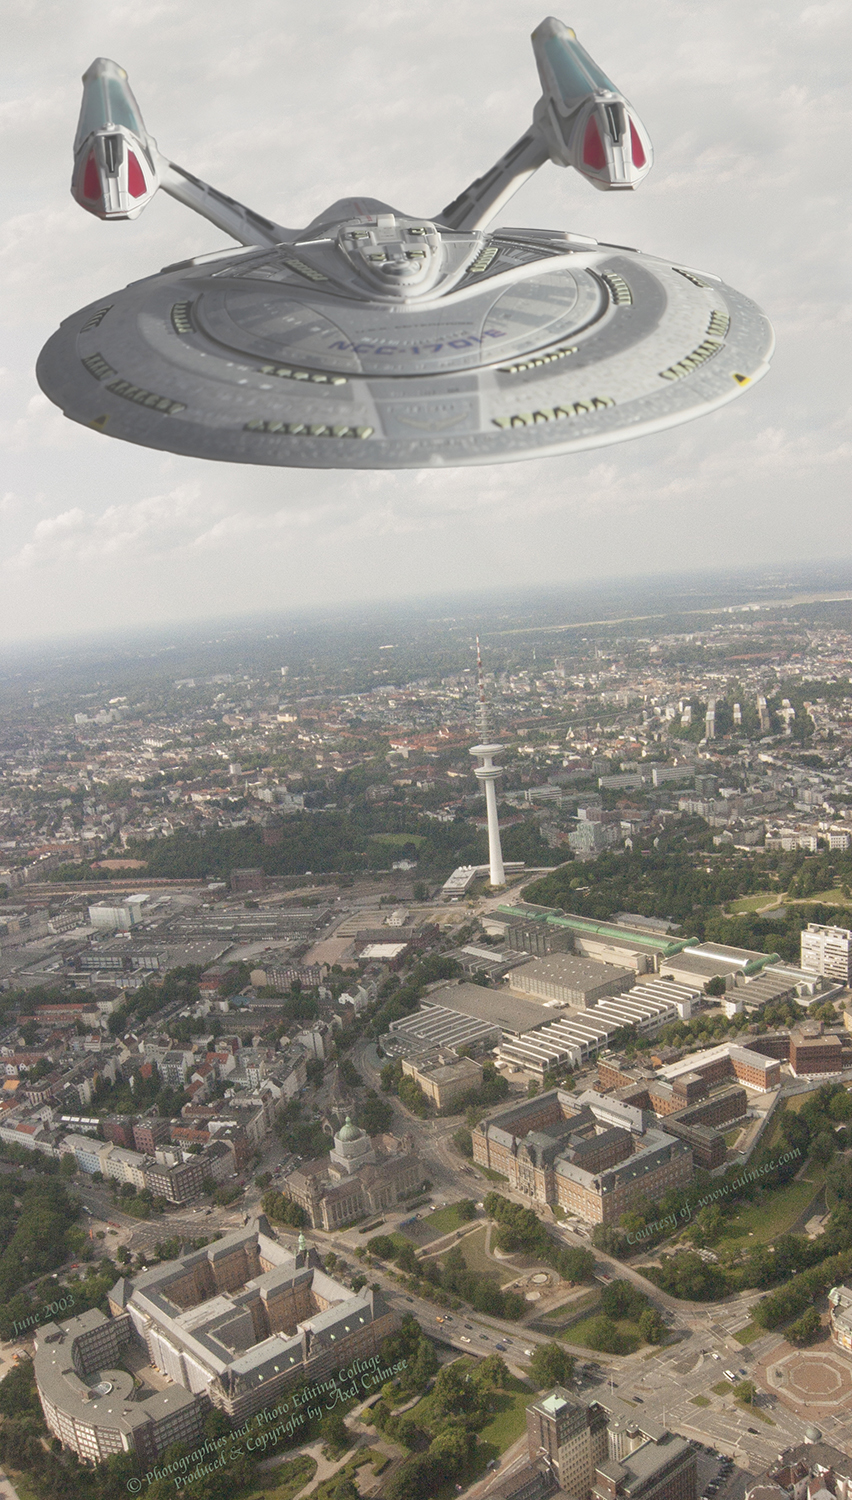 Enterprise-E seen over Hamburg during helicopter flight across radio tower